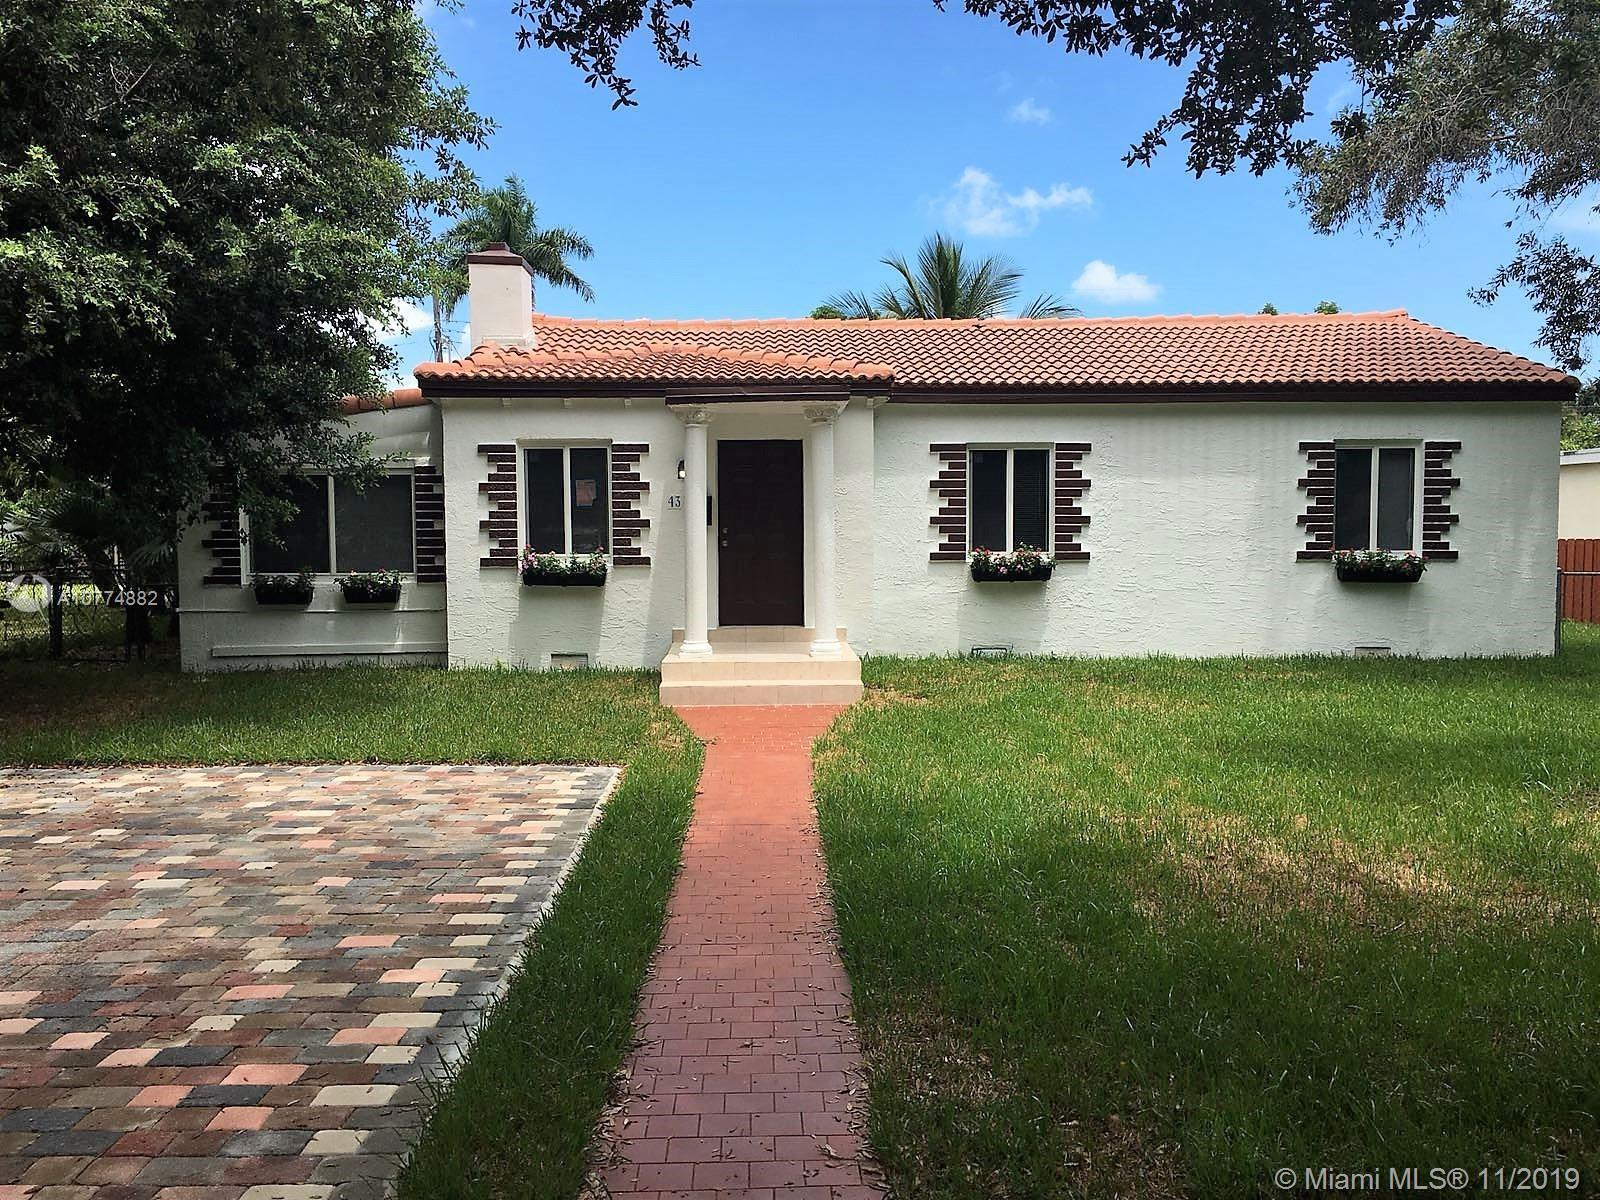 Location Location Location, much desired neighborhood close to Barry University and golf course. cha